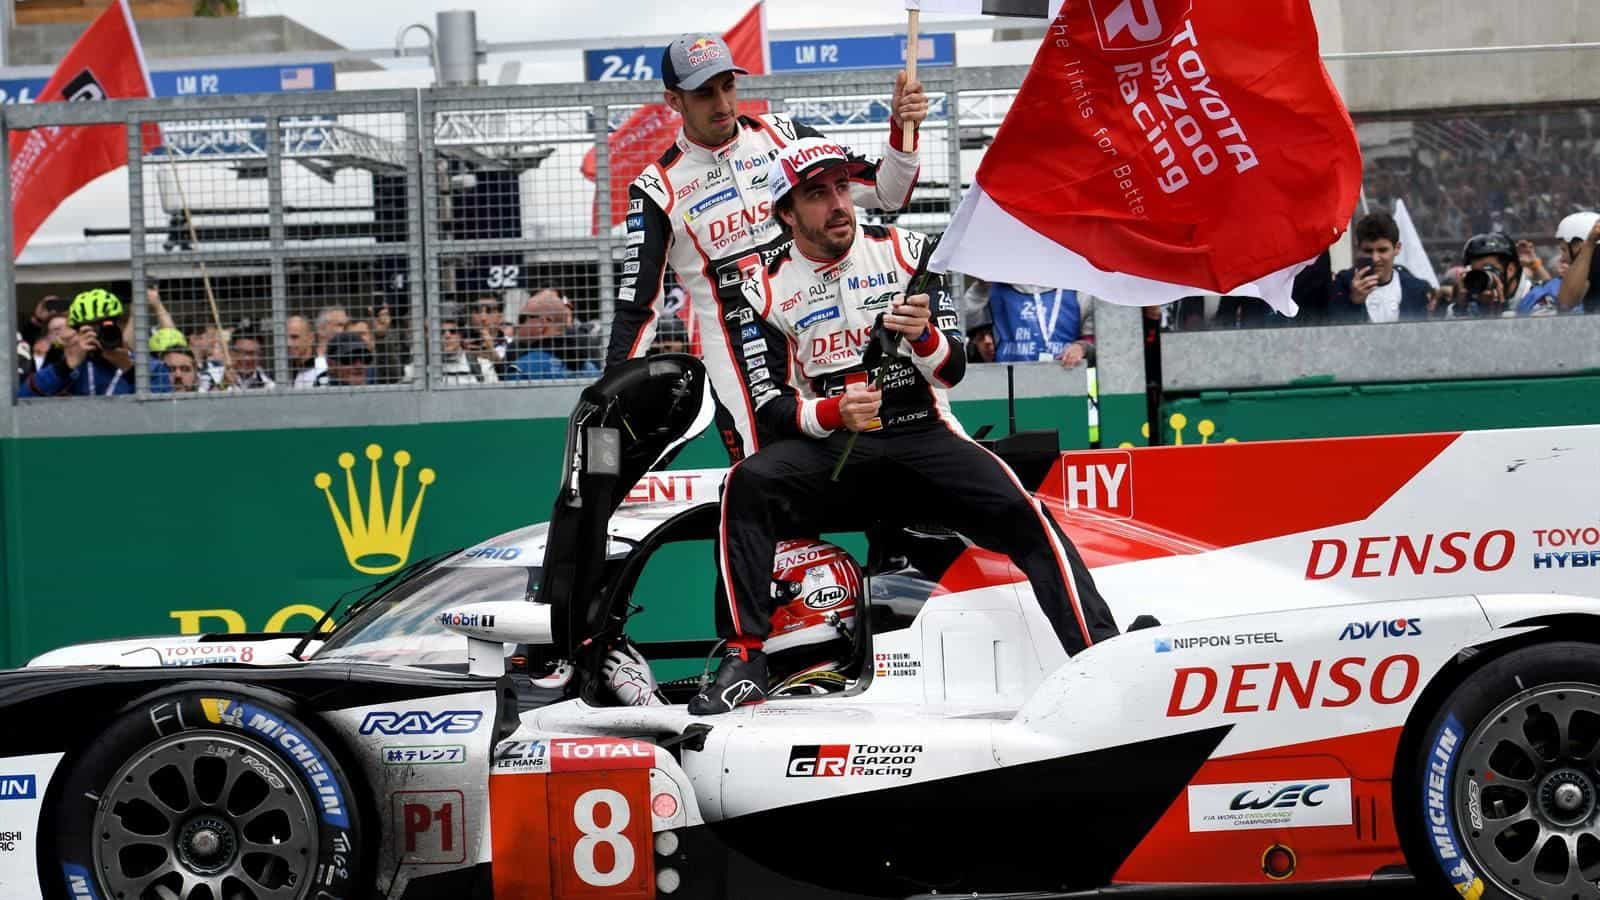 Alonso Nakajima Buemi Toyota LeMans 24h 2019 celebrating victory Photo Eurosport